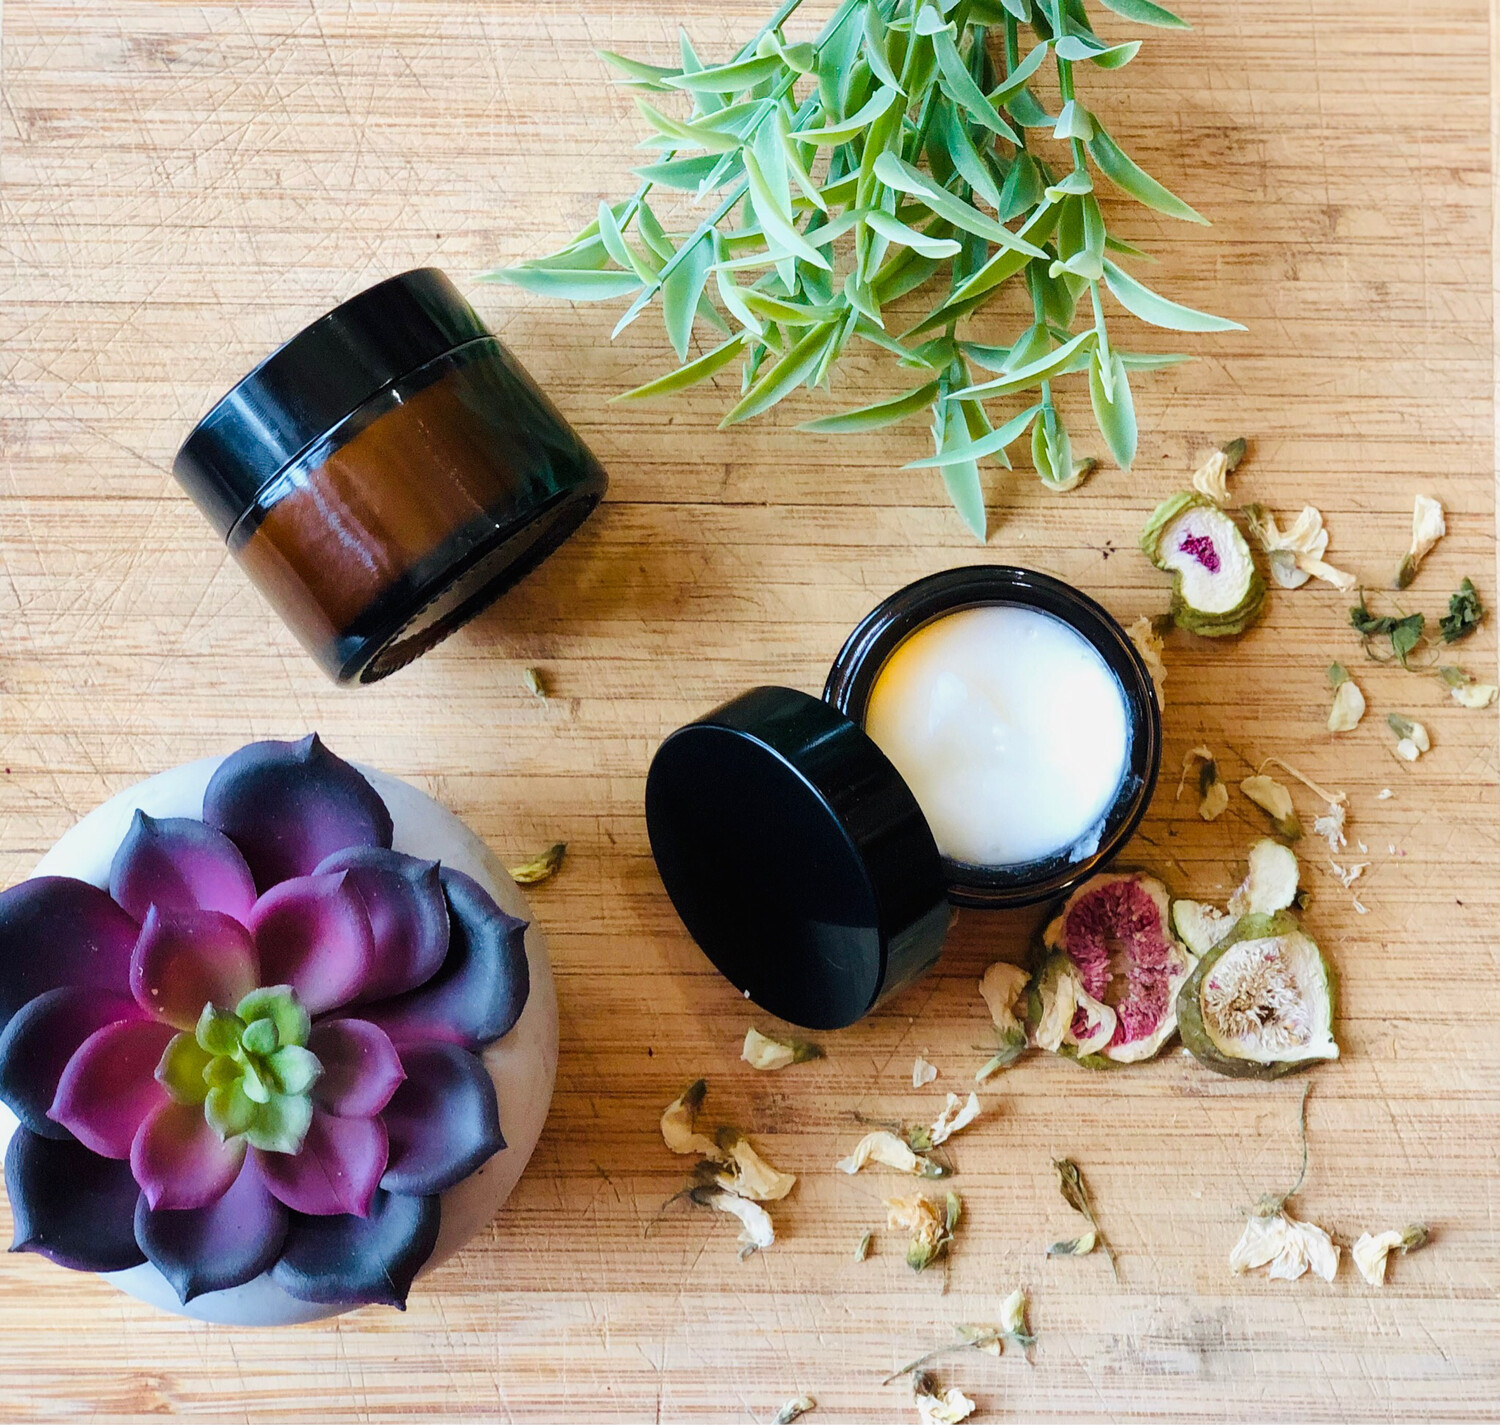 Gaia's Miracle Face Cream